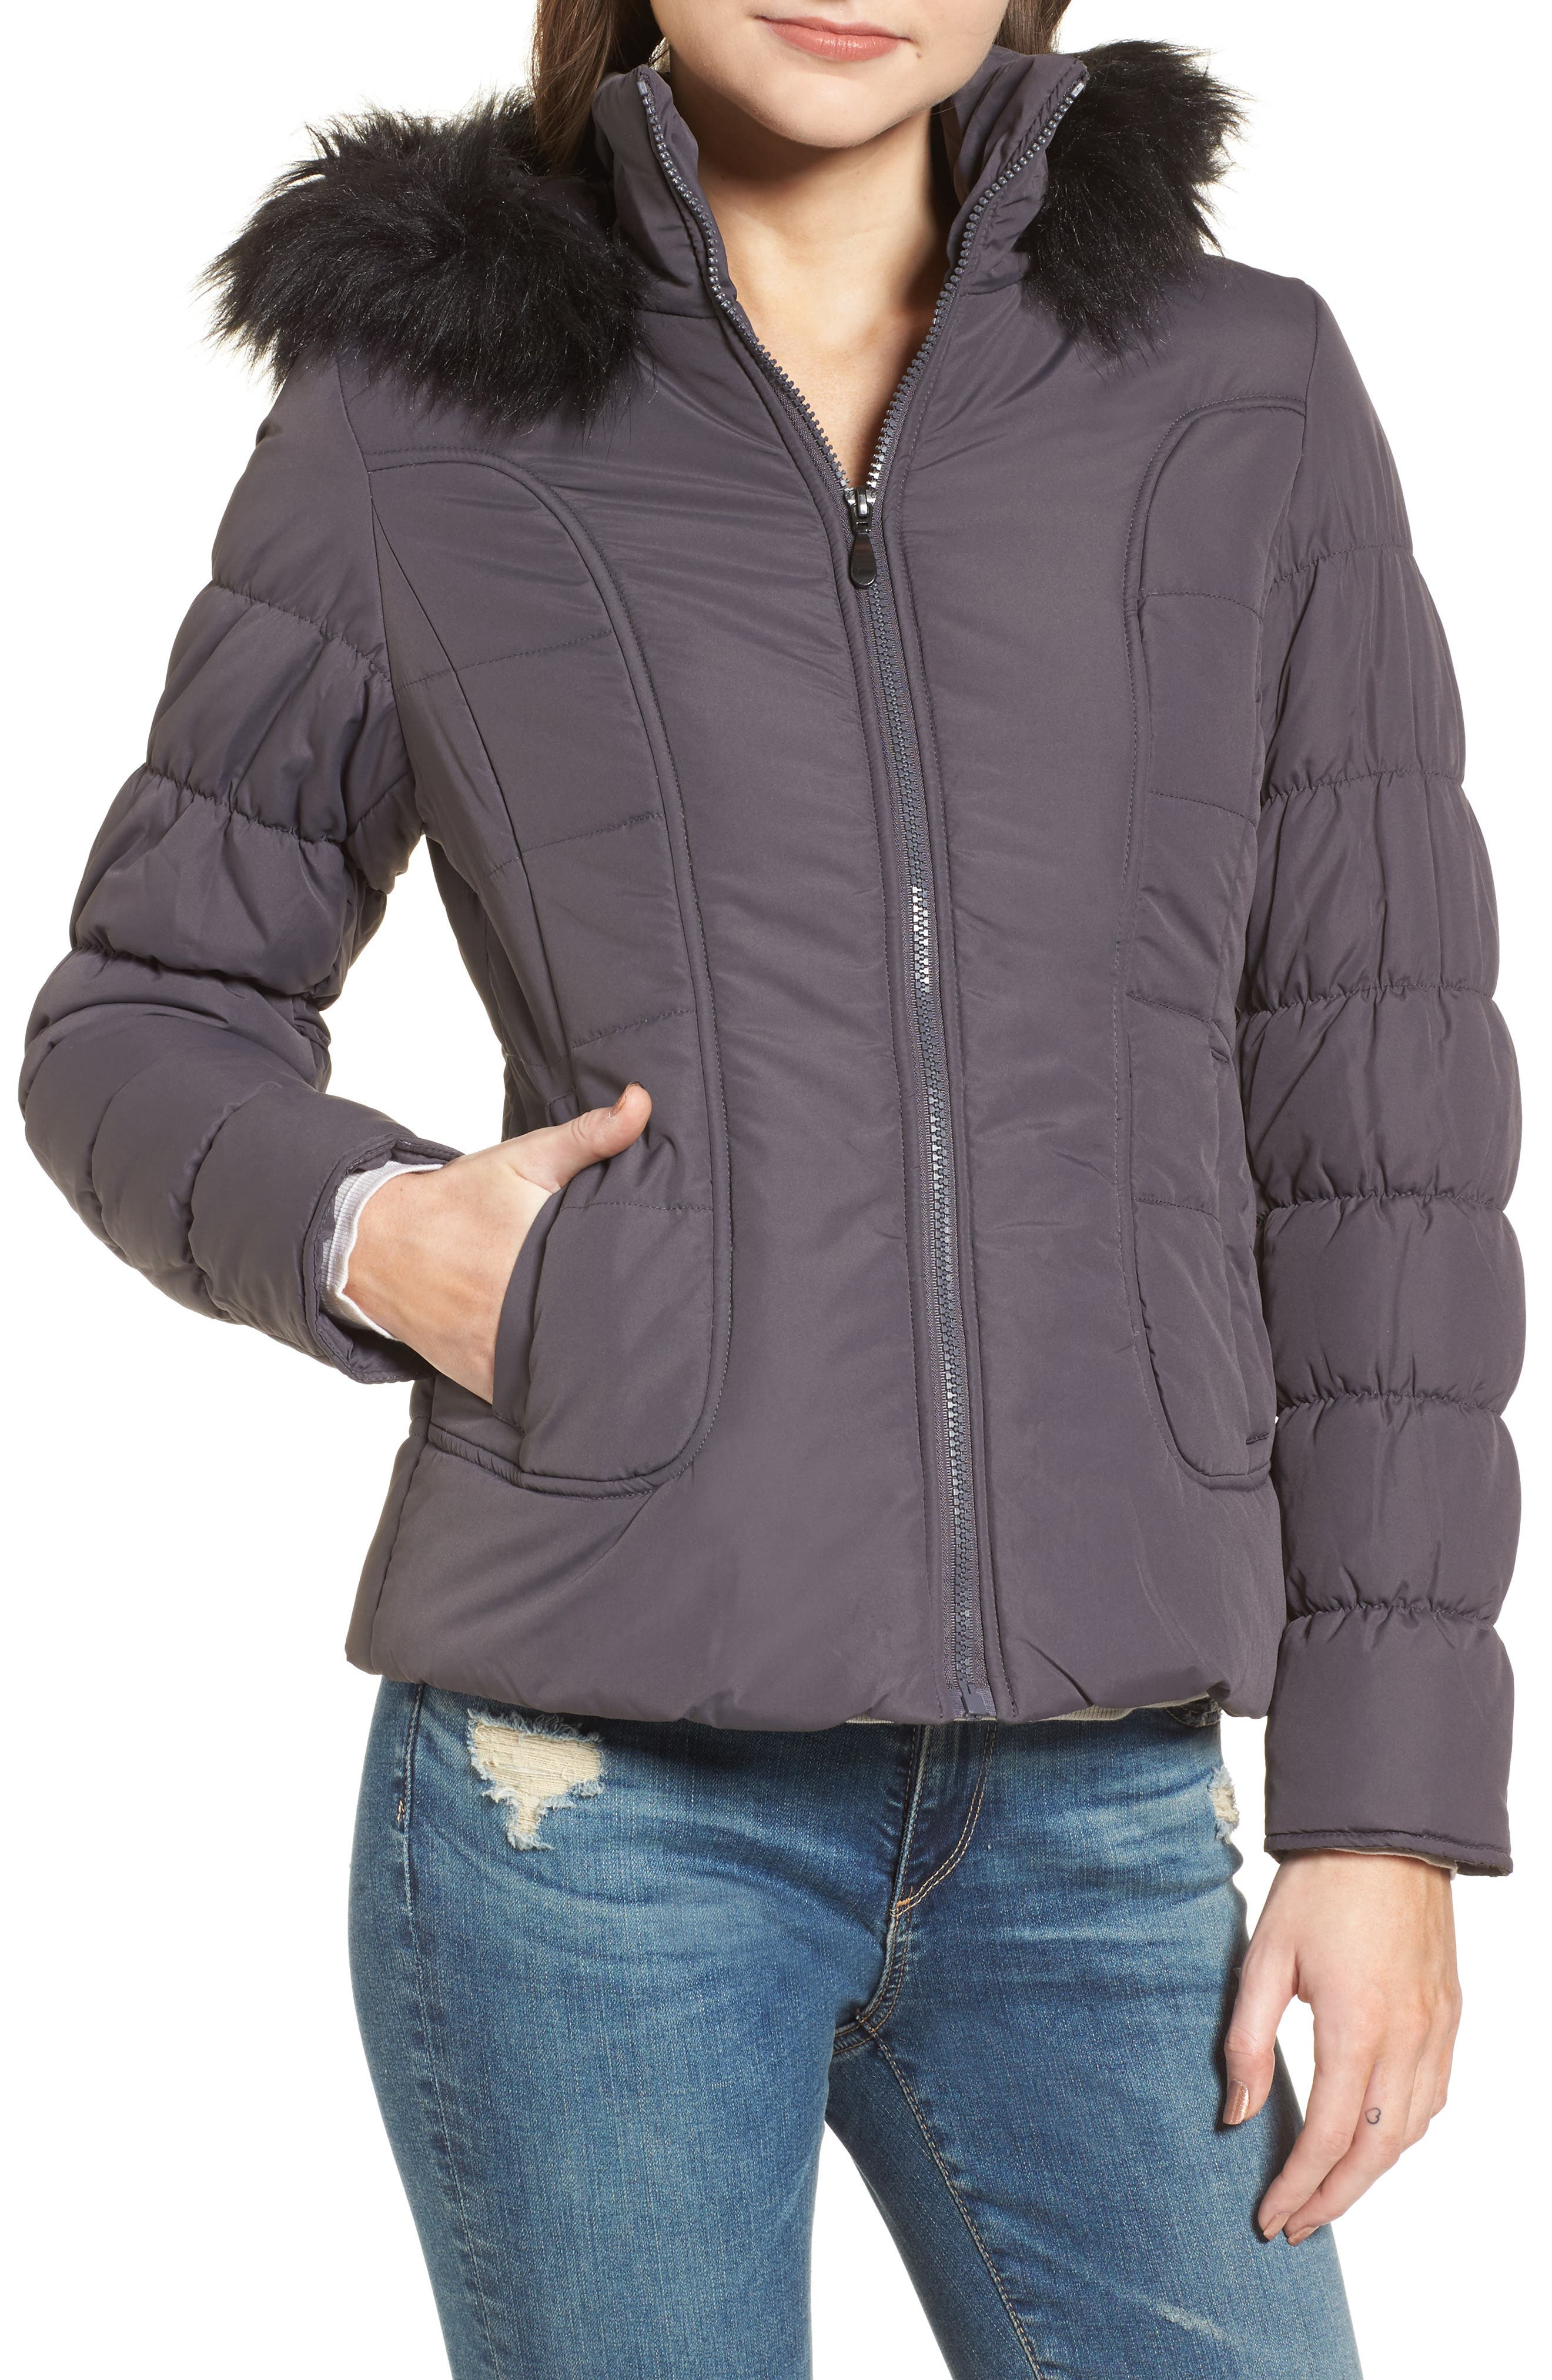 Quilted Jacket with Faux Fur Collar,                             Alternate thumbnail 4, color,                             036